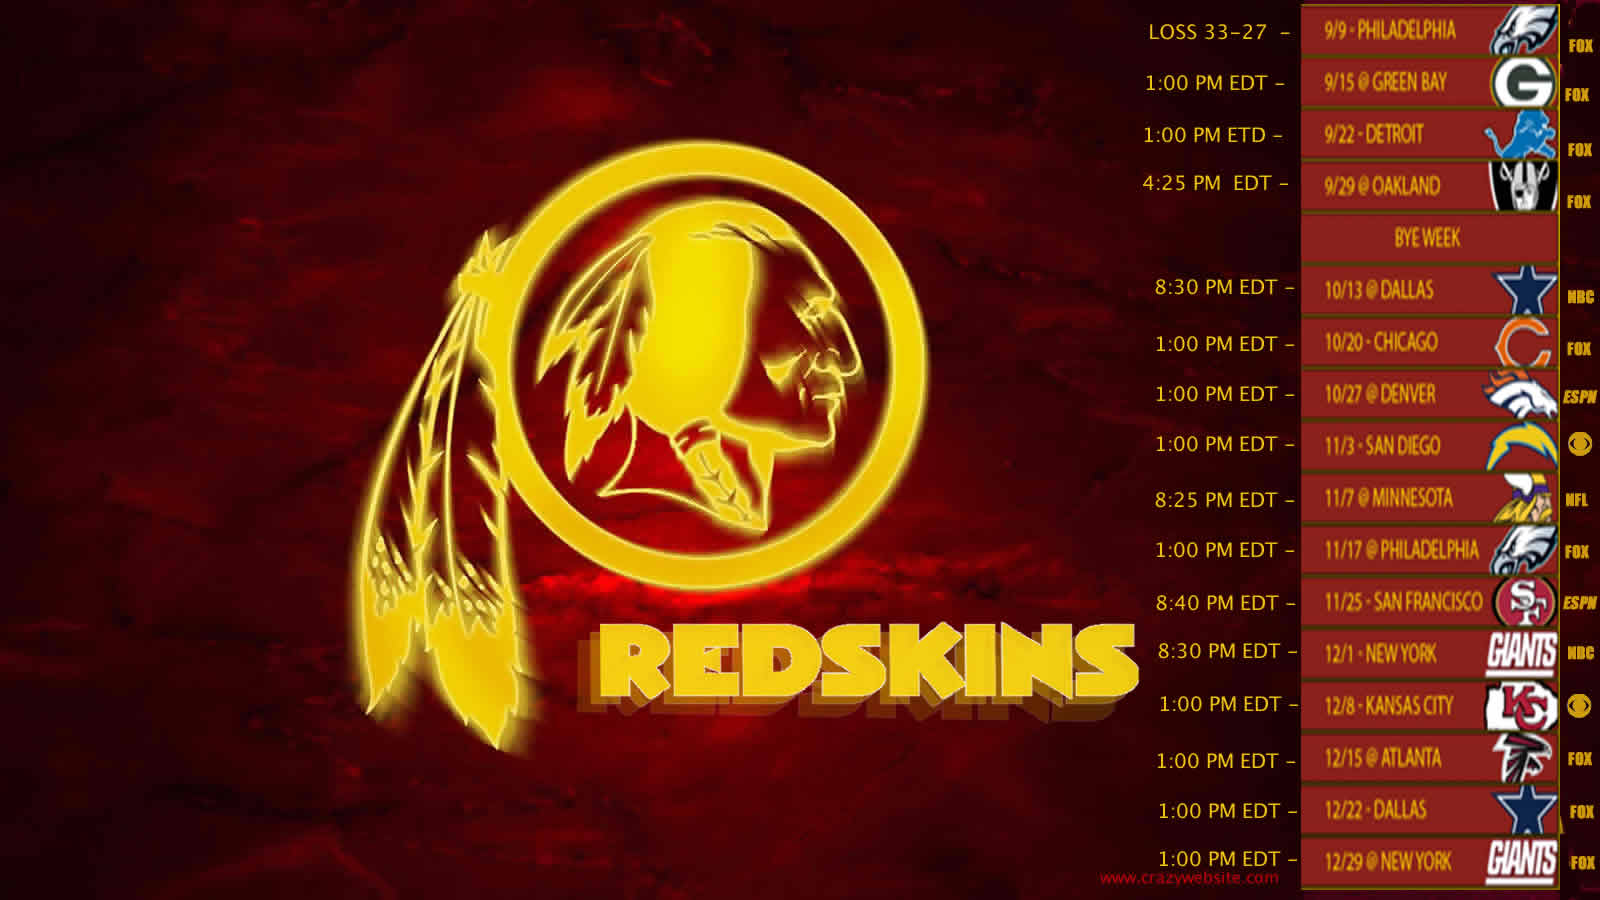 Best-of-Washington-Redskins-Full-HD-Pictures-×-Redskins-Adorable-Wal-wallpaper-wp3403193